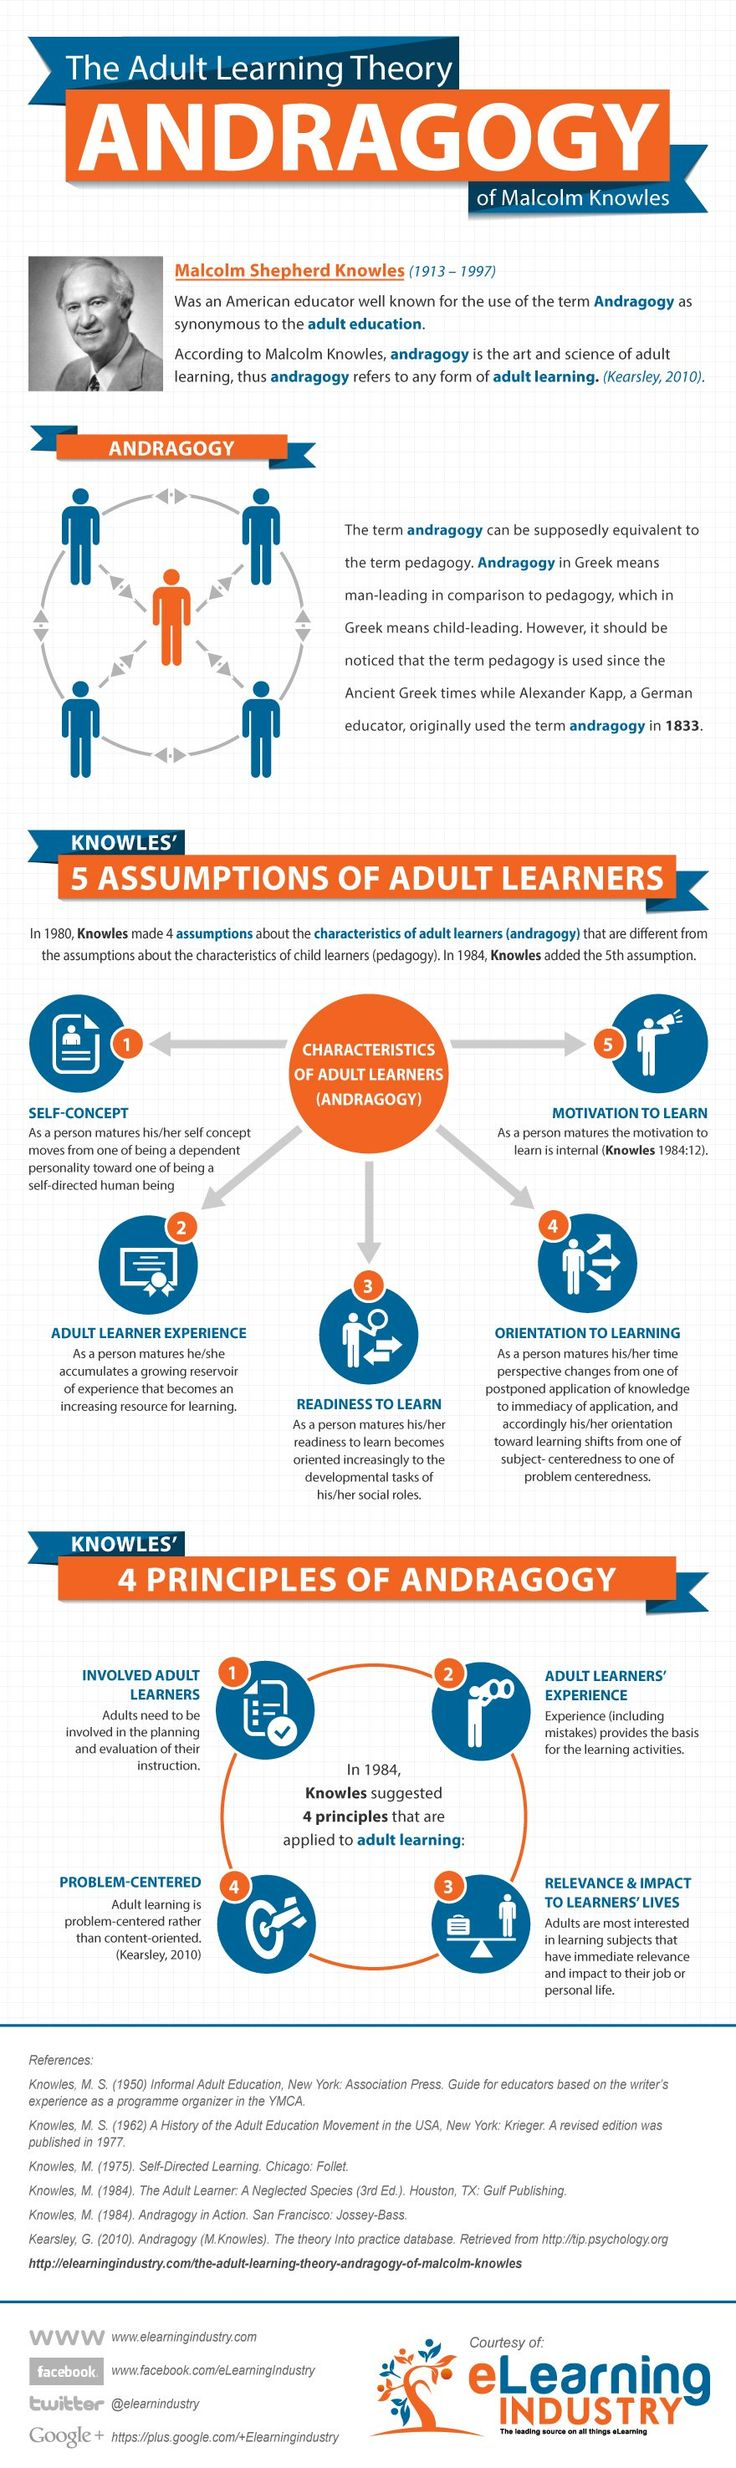 Malcolm Knowles'  Adult Learning Theory, Knowles' 5 Assumptions of Adult Learners, and the 4 Principles of Andragogy. #elearning #edtech #edtechchat